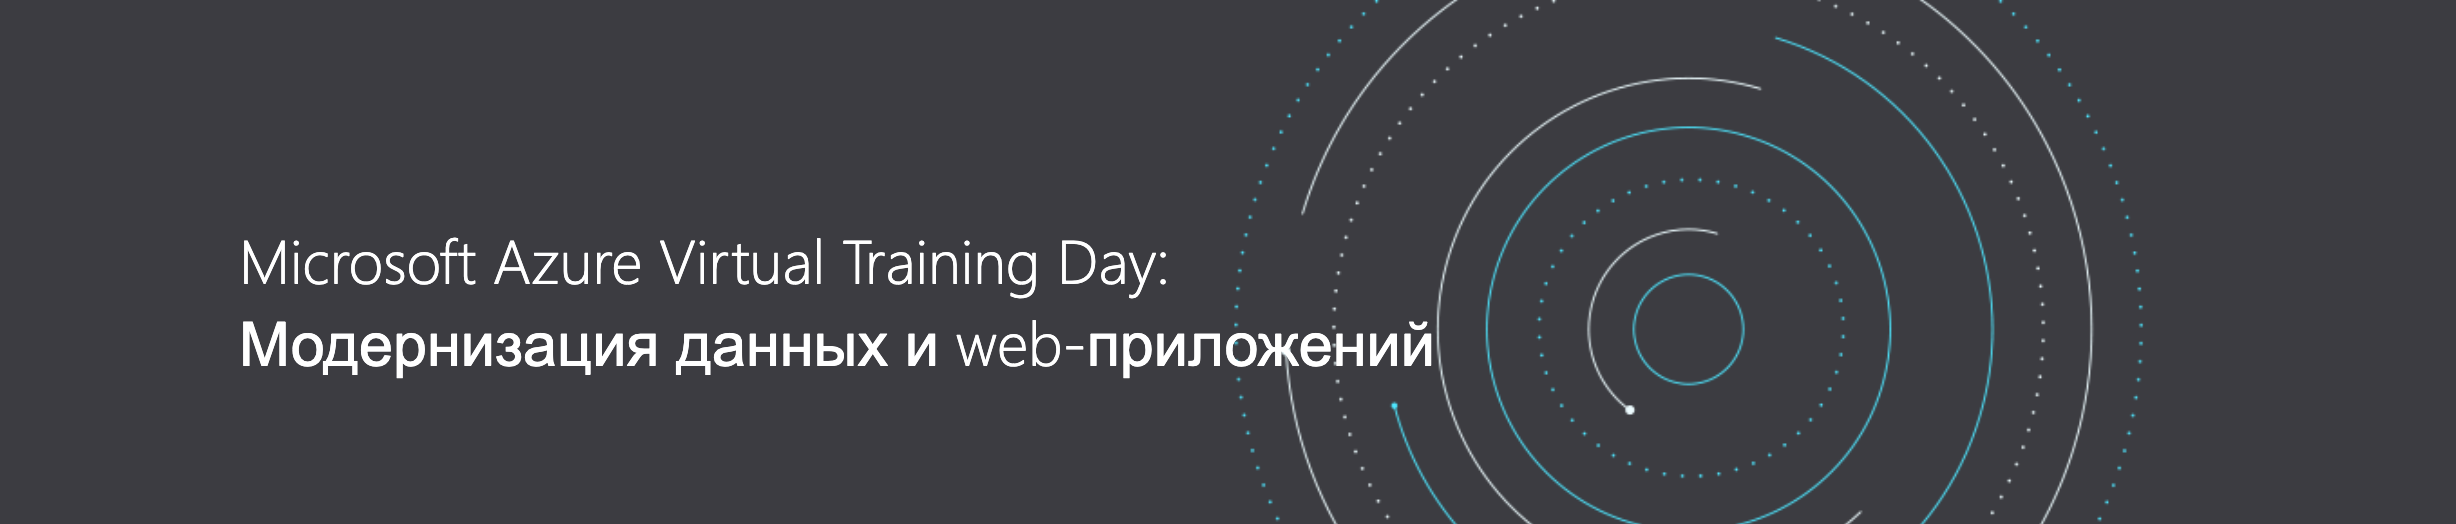 Microsoft Azure Virtual Training Day: Модернизация данных и web-приложений